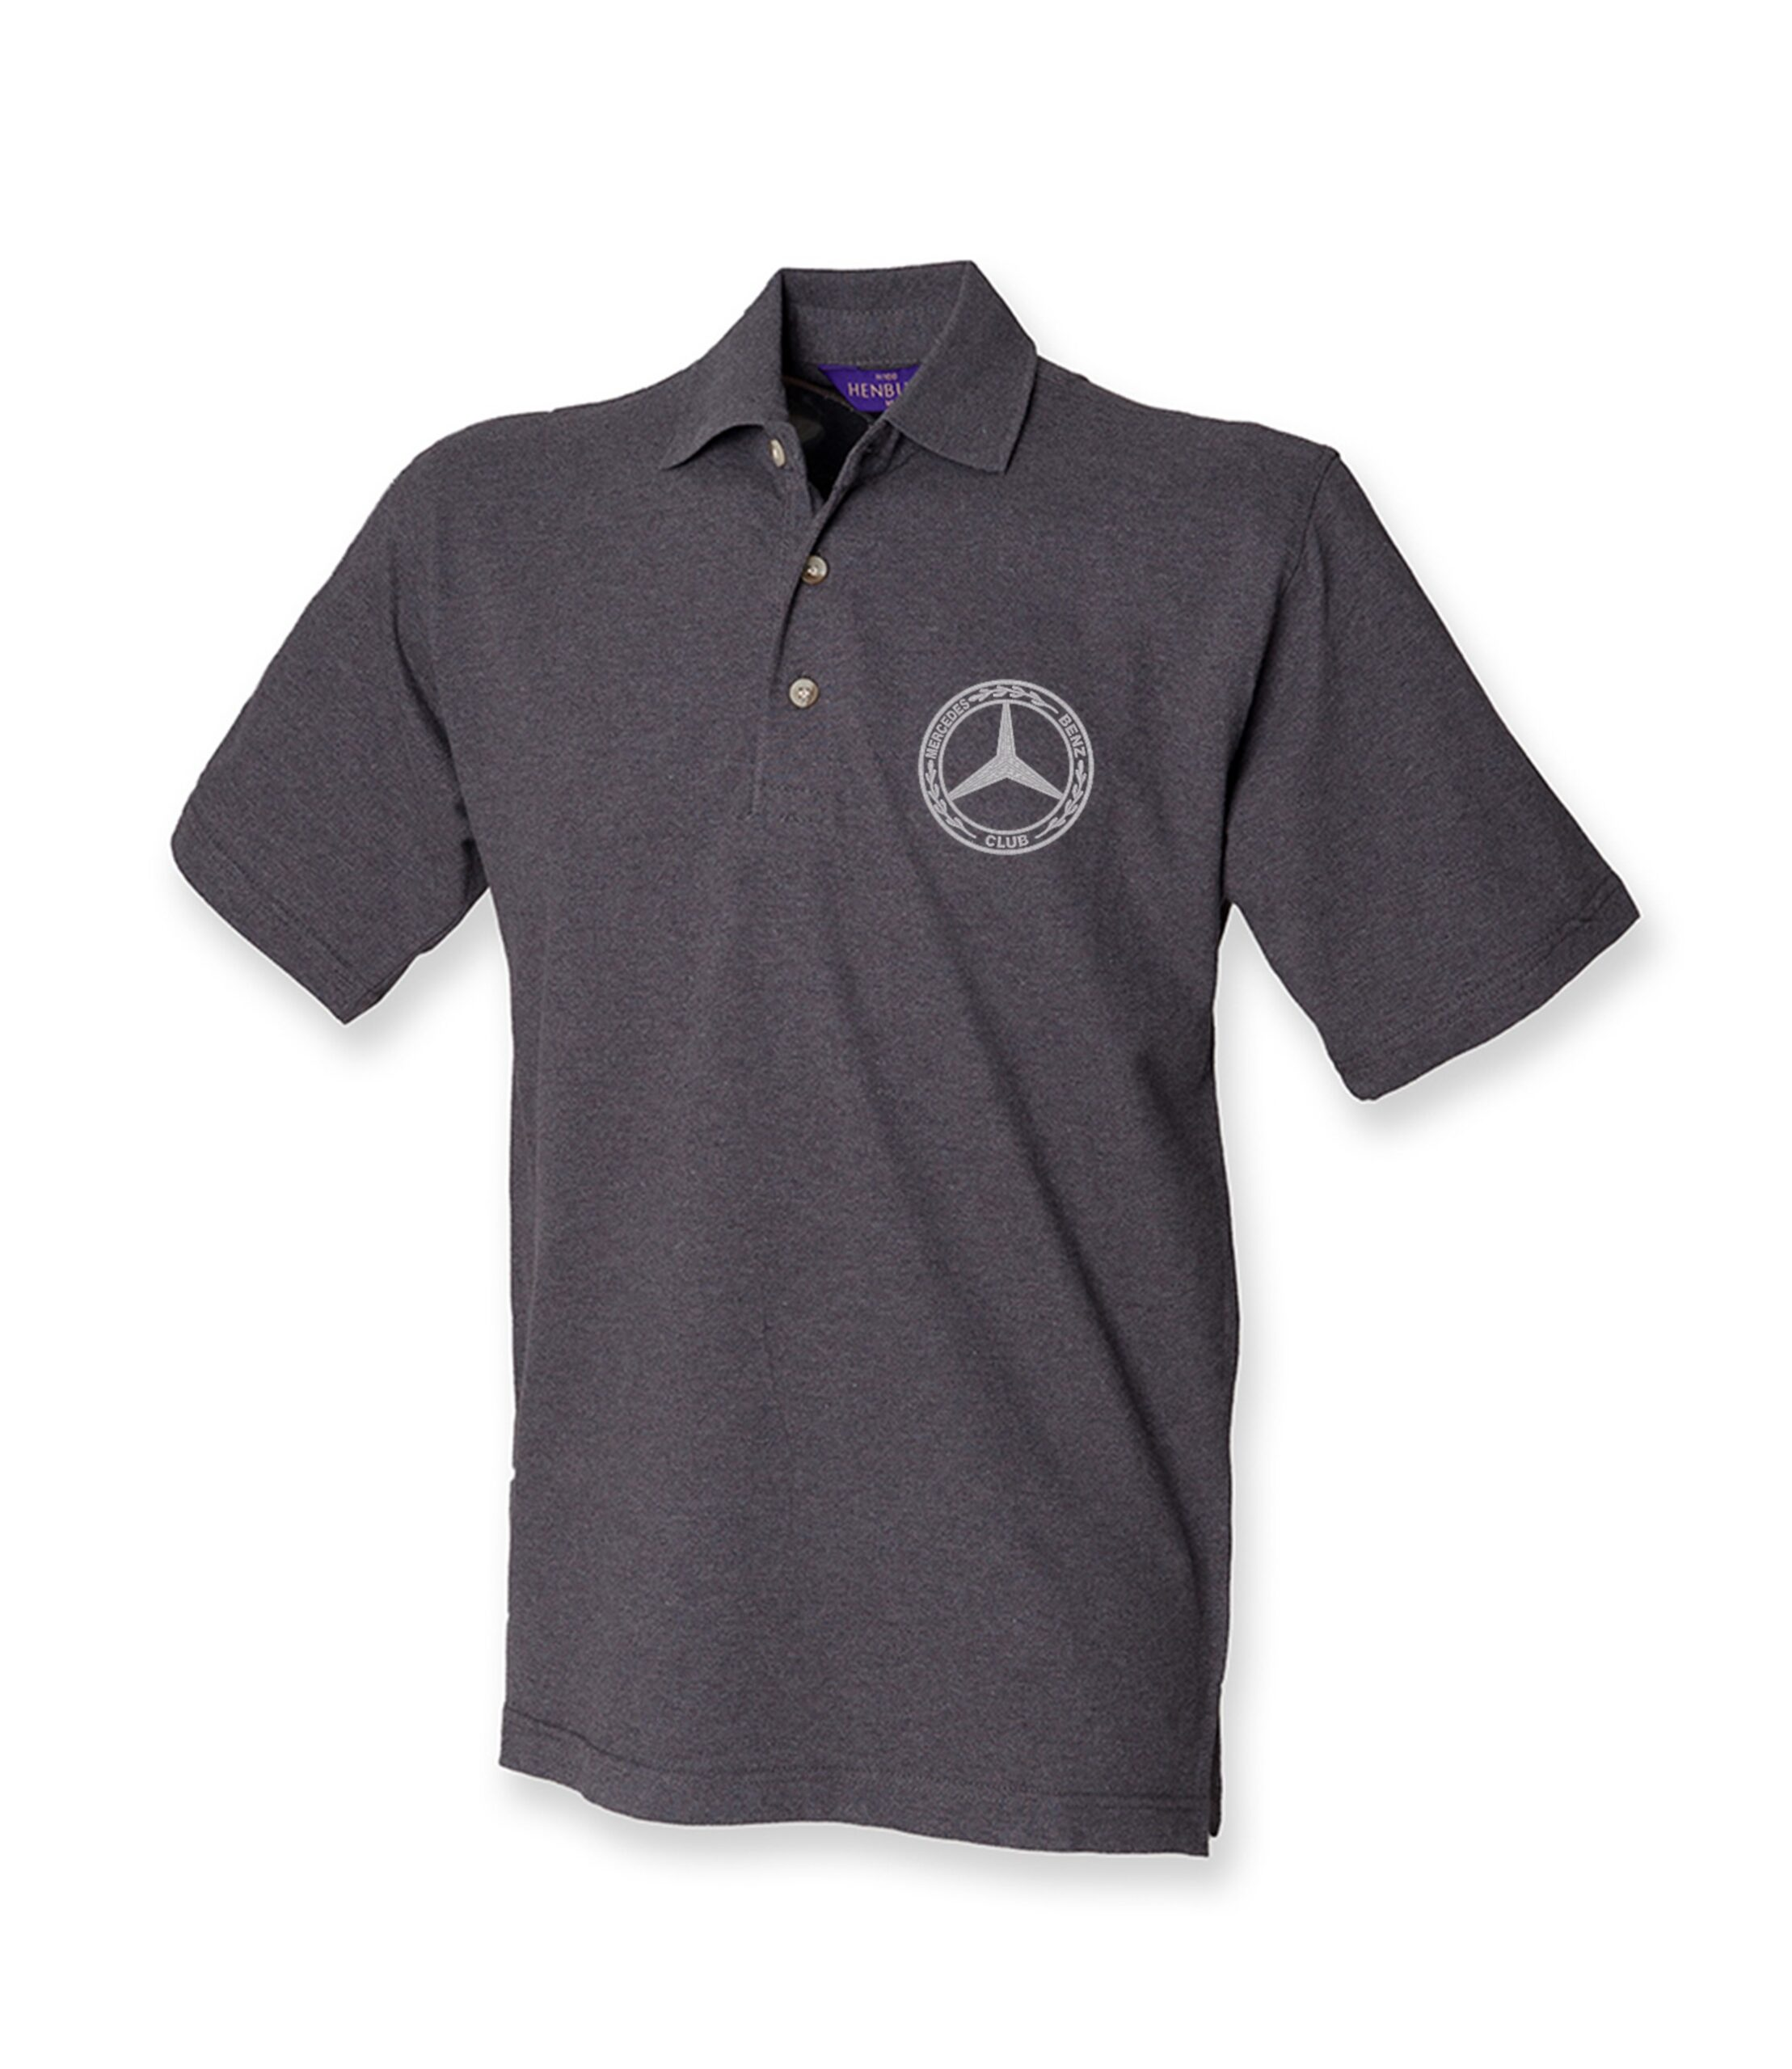 Mercedes-Benz Club Cotton Pique Polo Shirt Charcoal